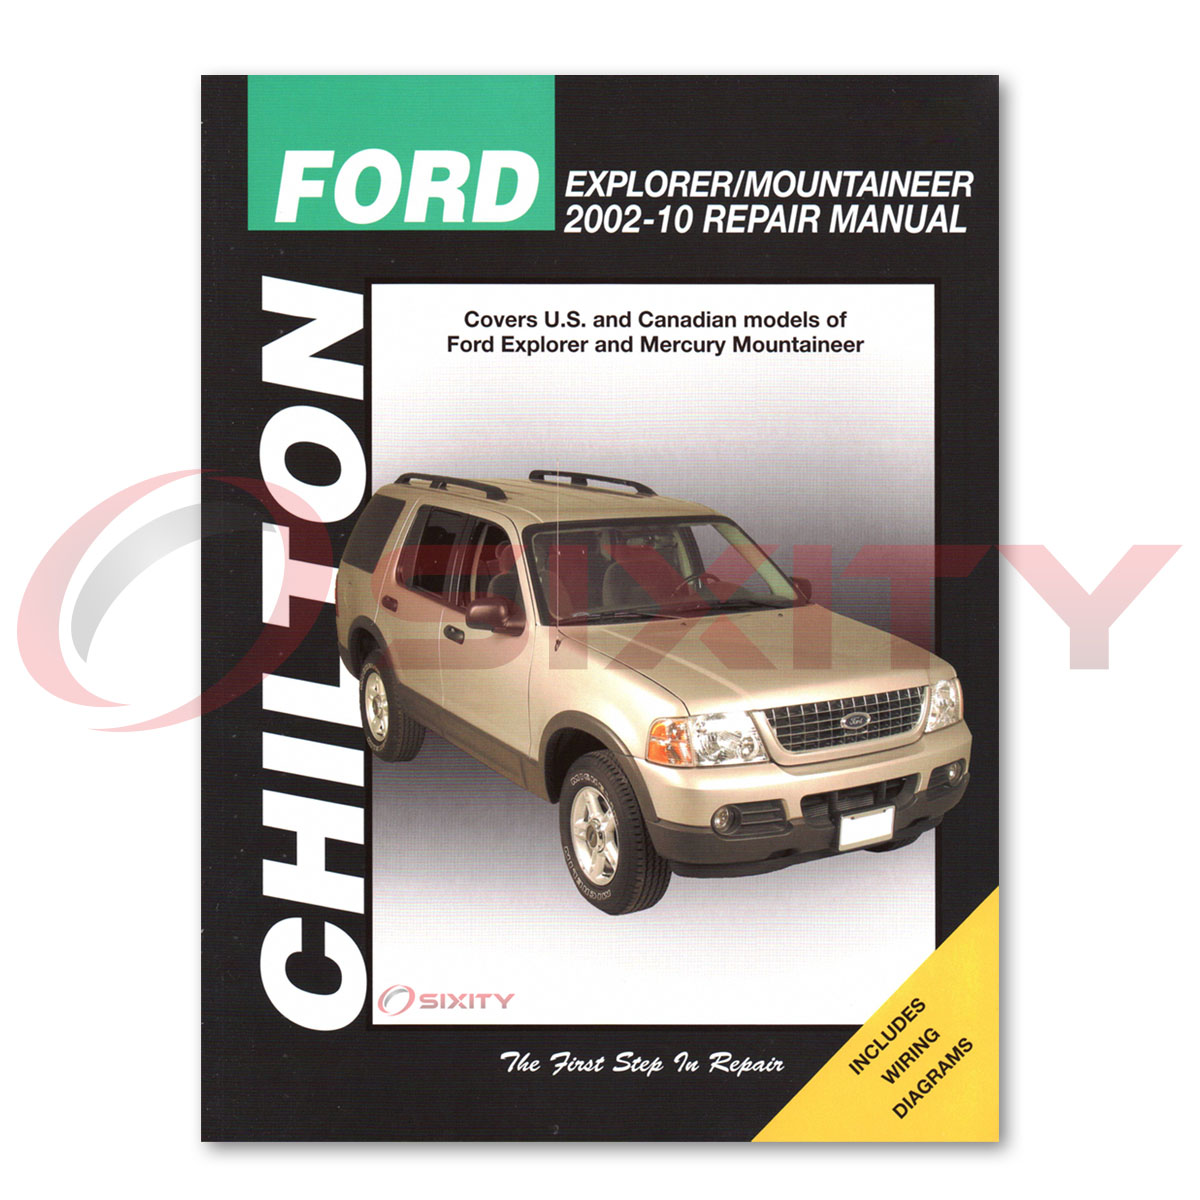 2004 ford explorer manual repair